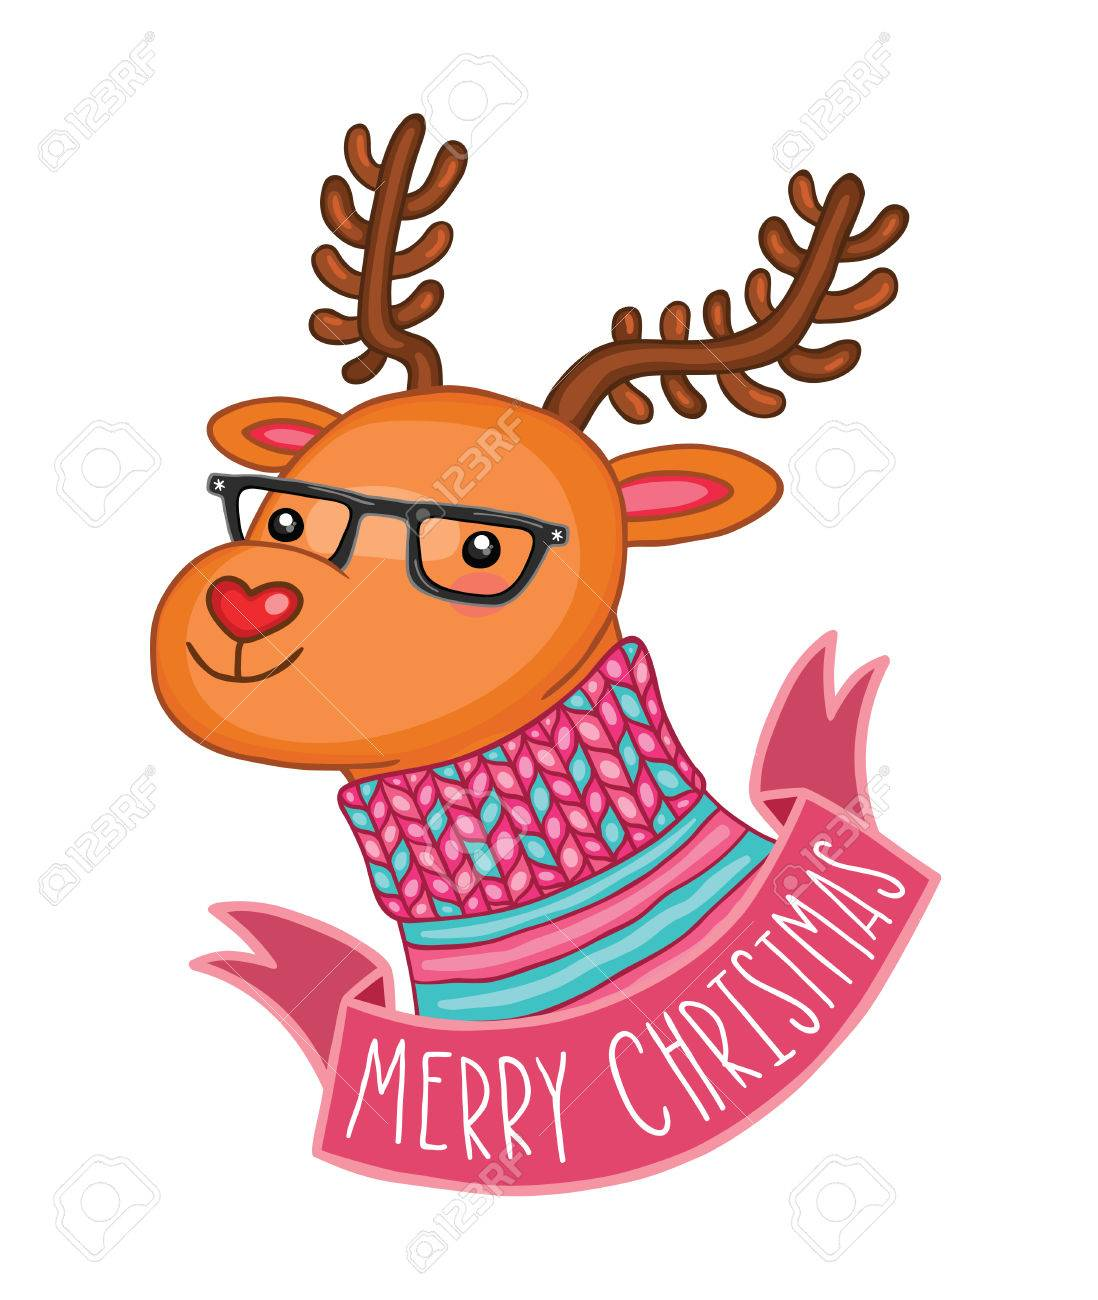 Merry Christmas Cute Deer In Hipster Glasses Royalty Free Cliparts ...